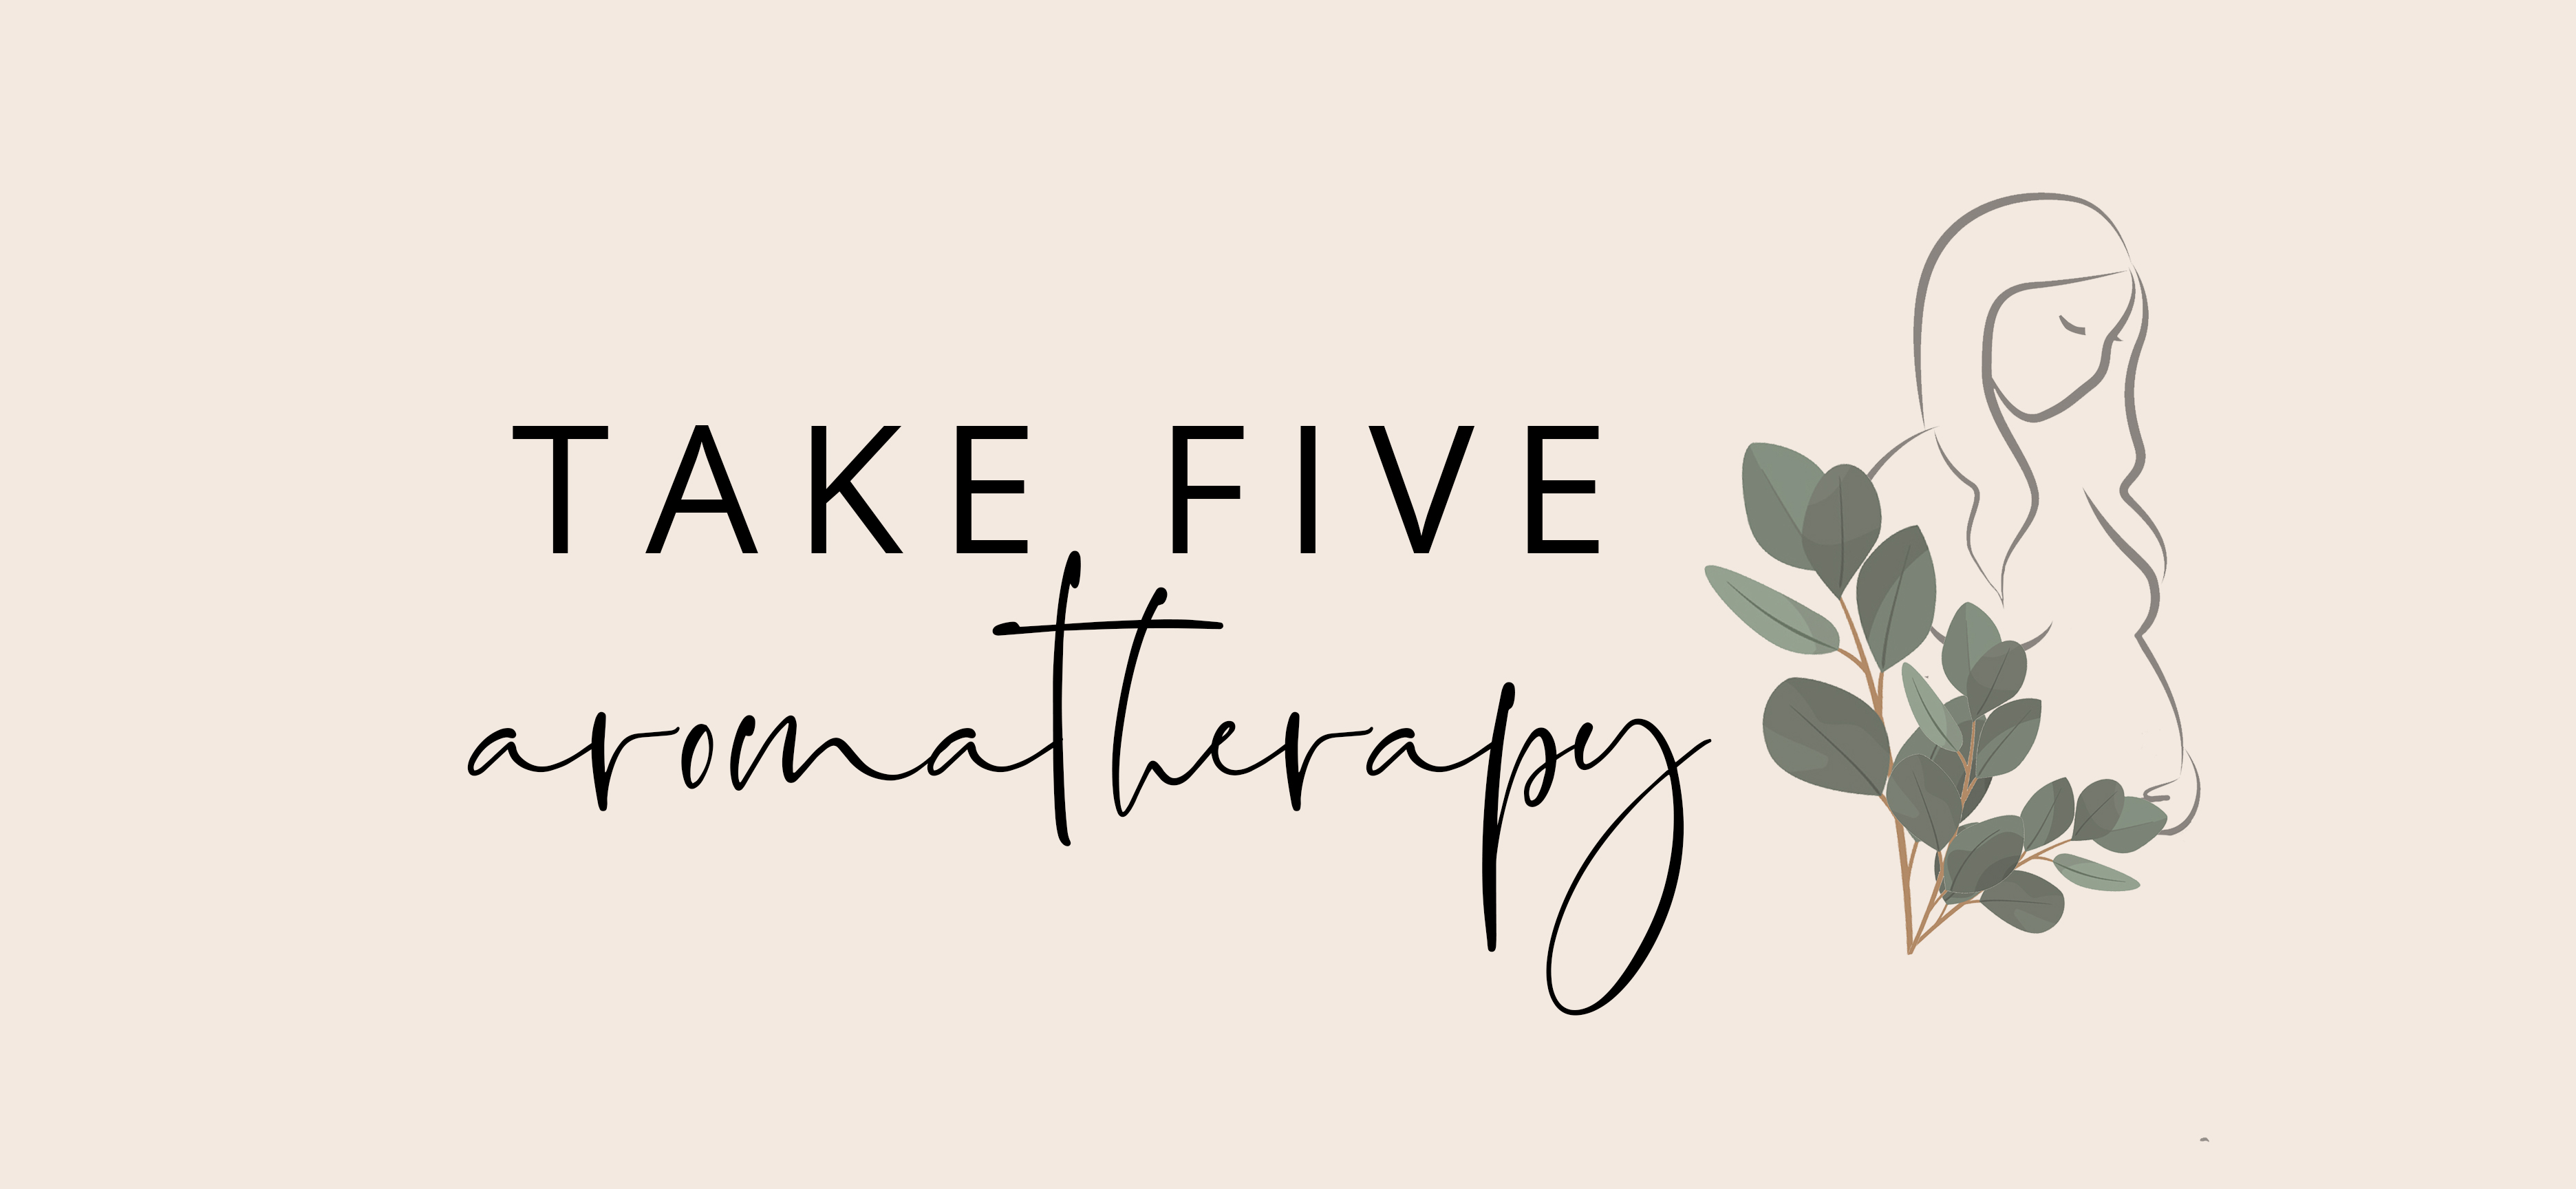 Take Five Aromatherapy 's logo